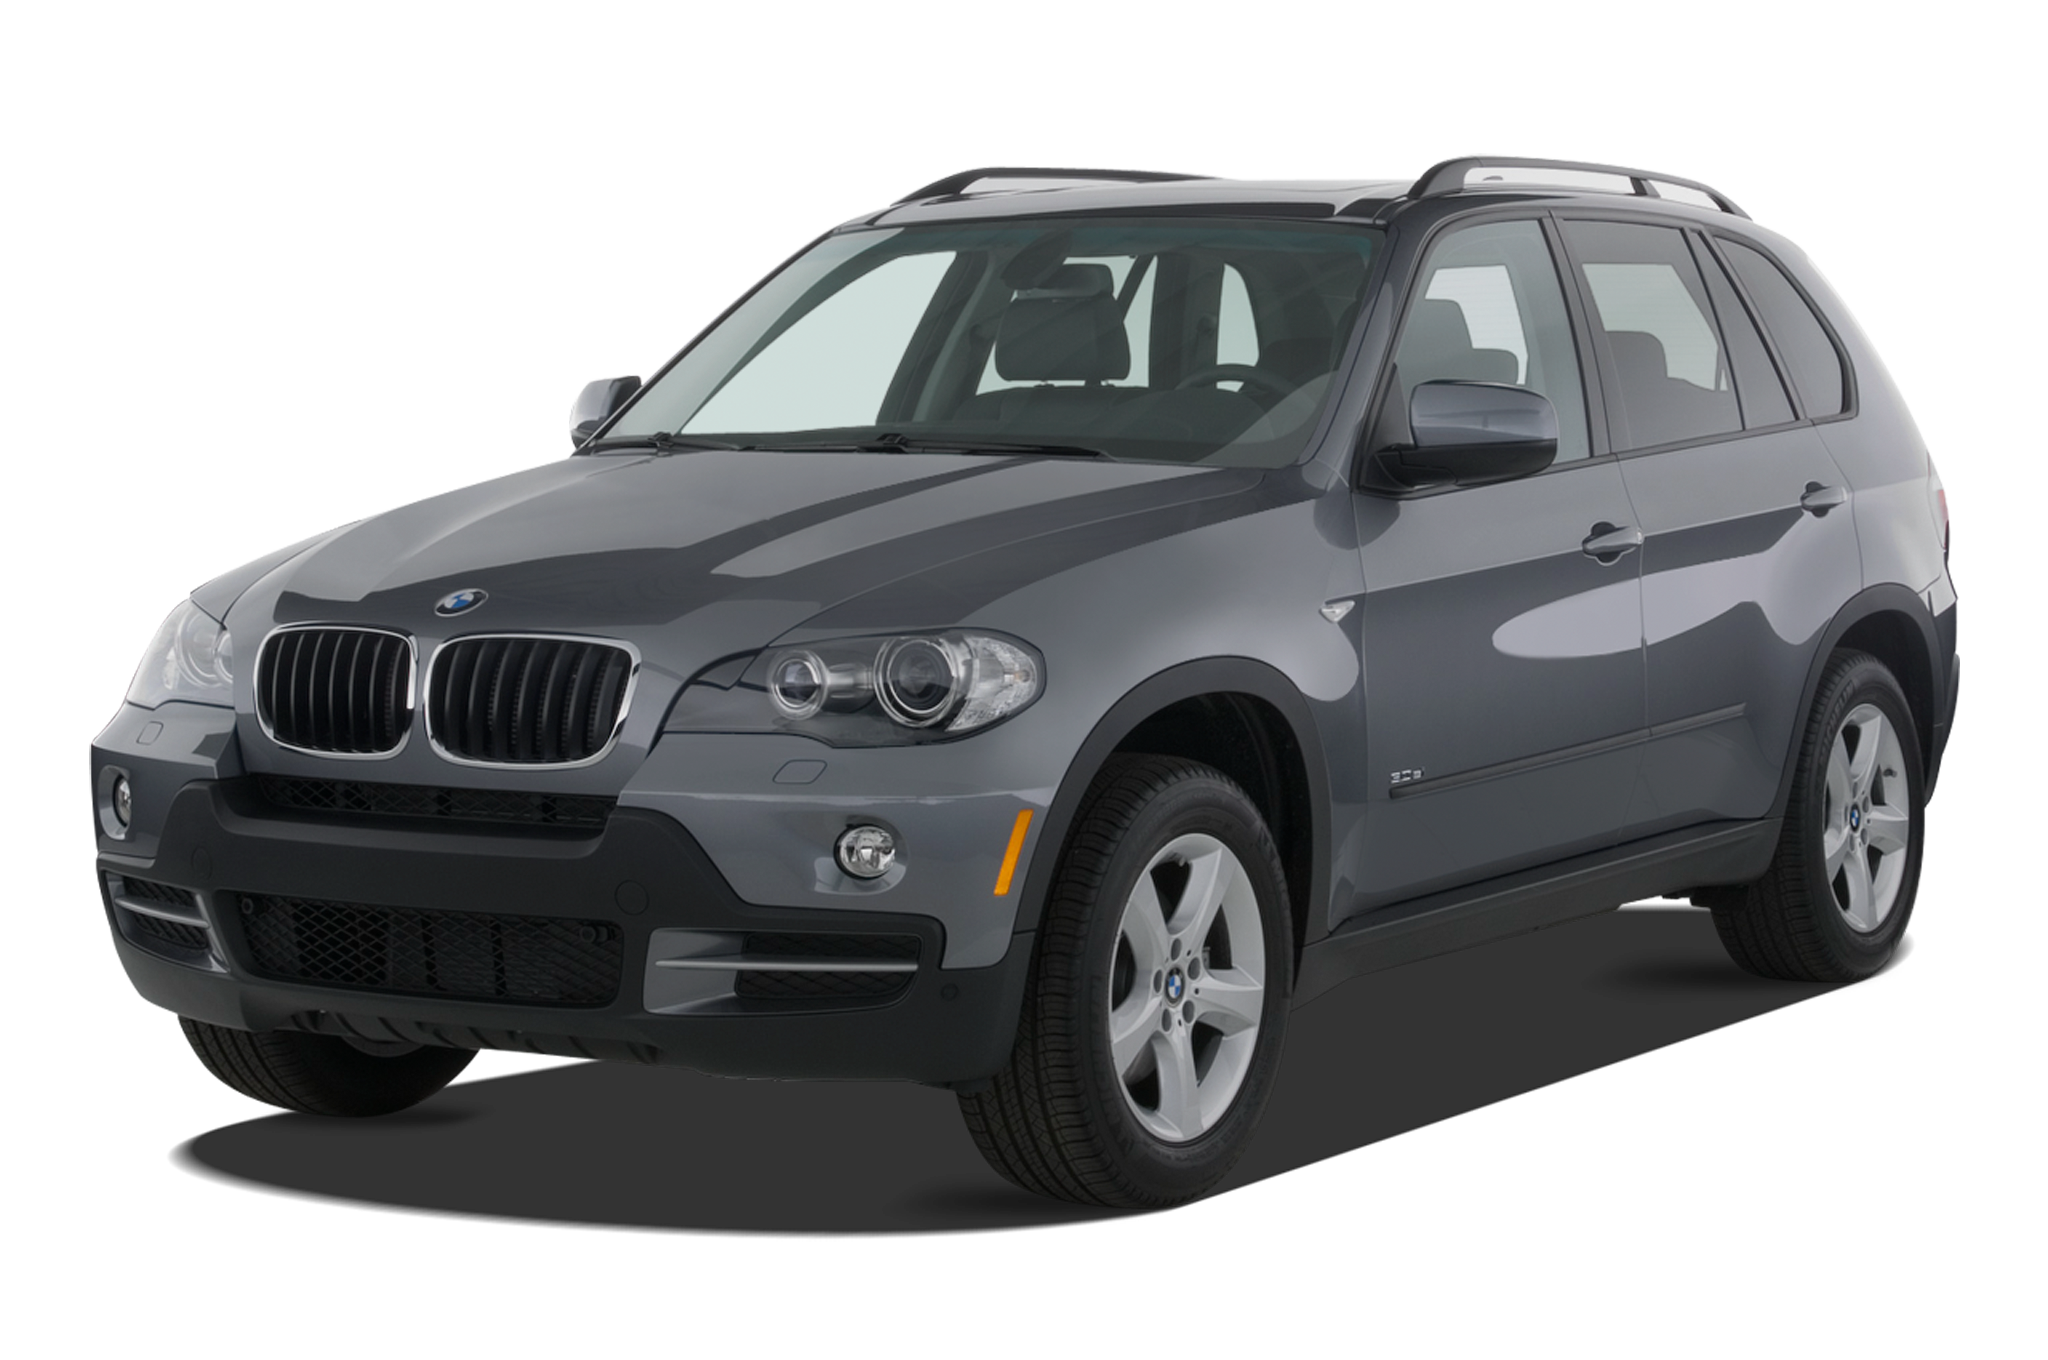 Find Used 2010 Bmw X5 35d: BMW Luxury Crossover SUV Review